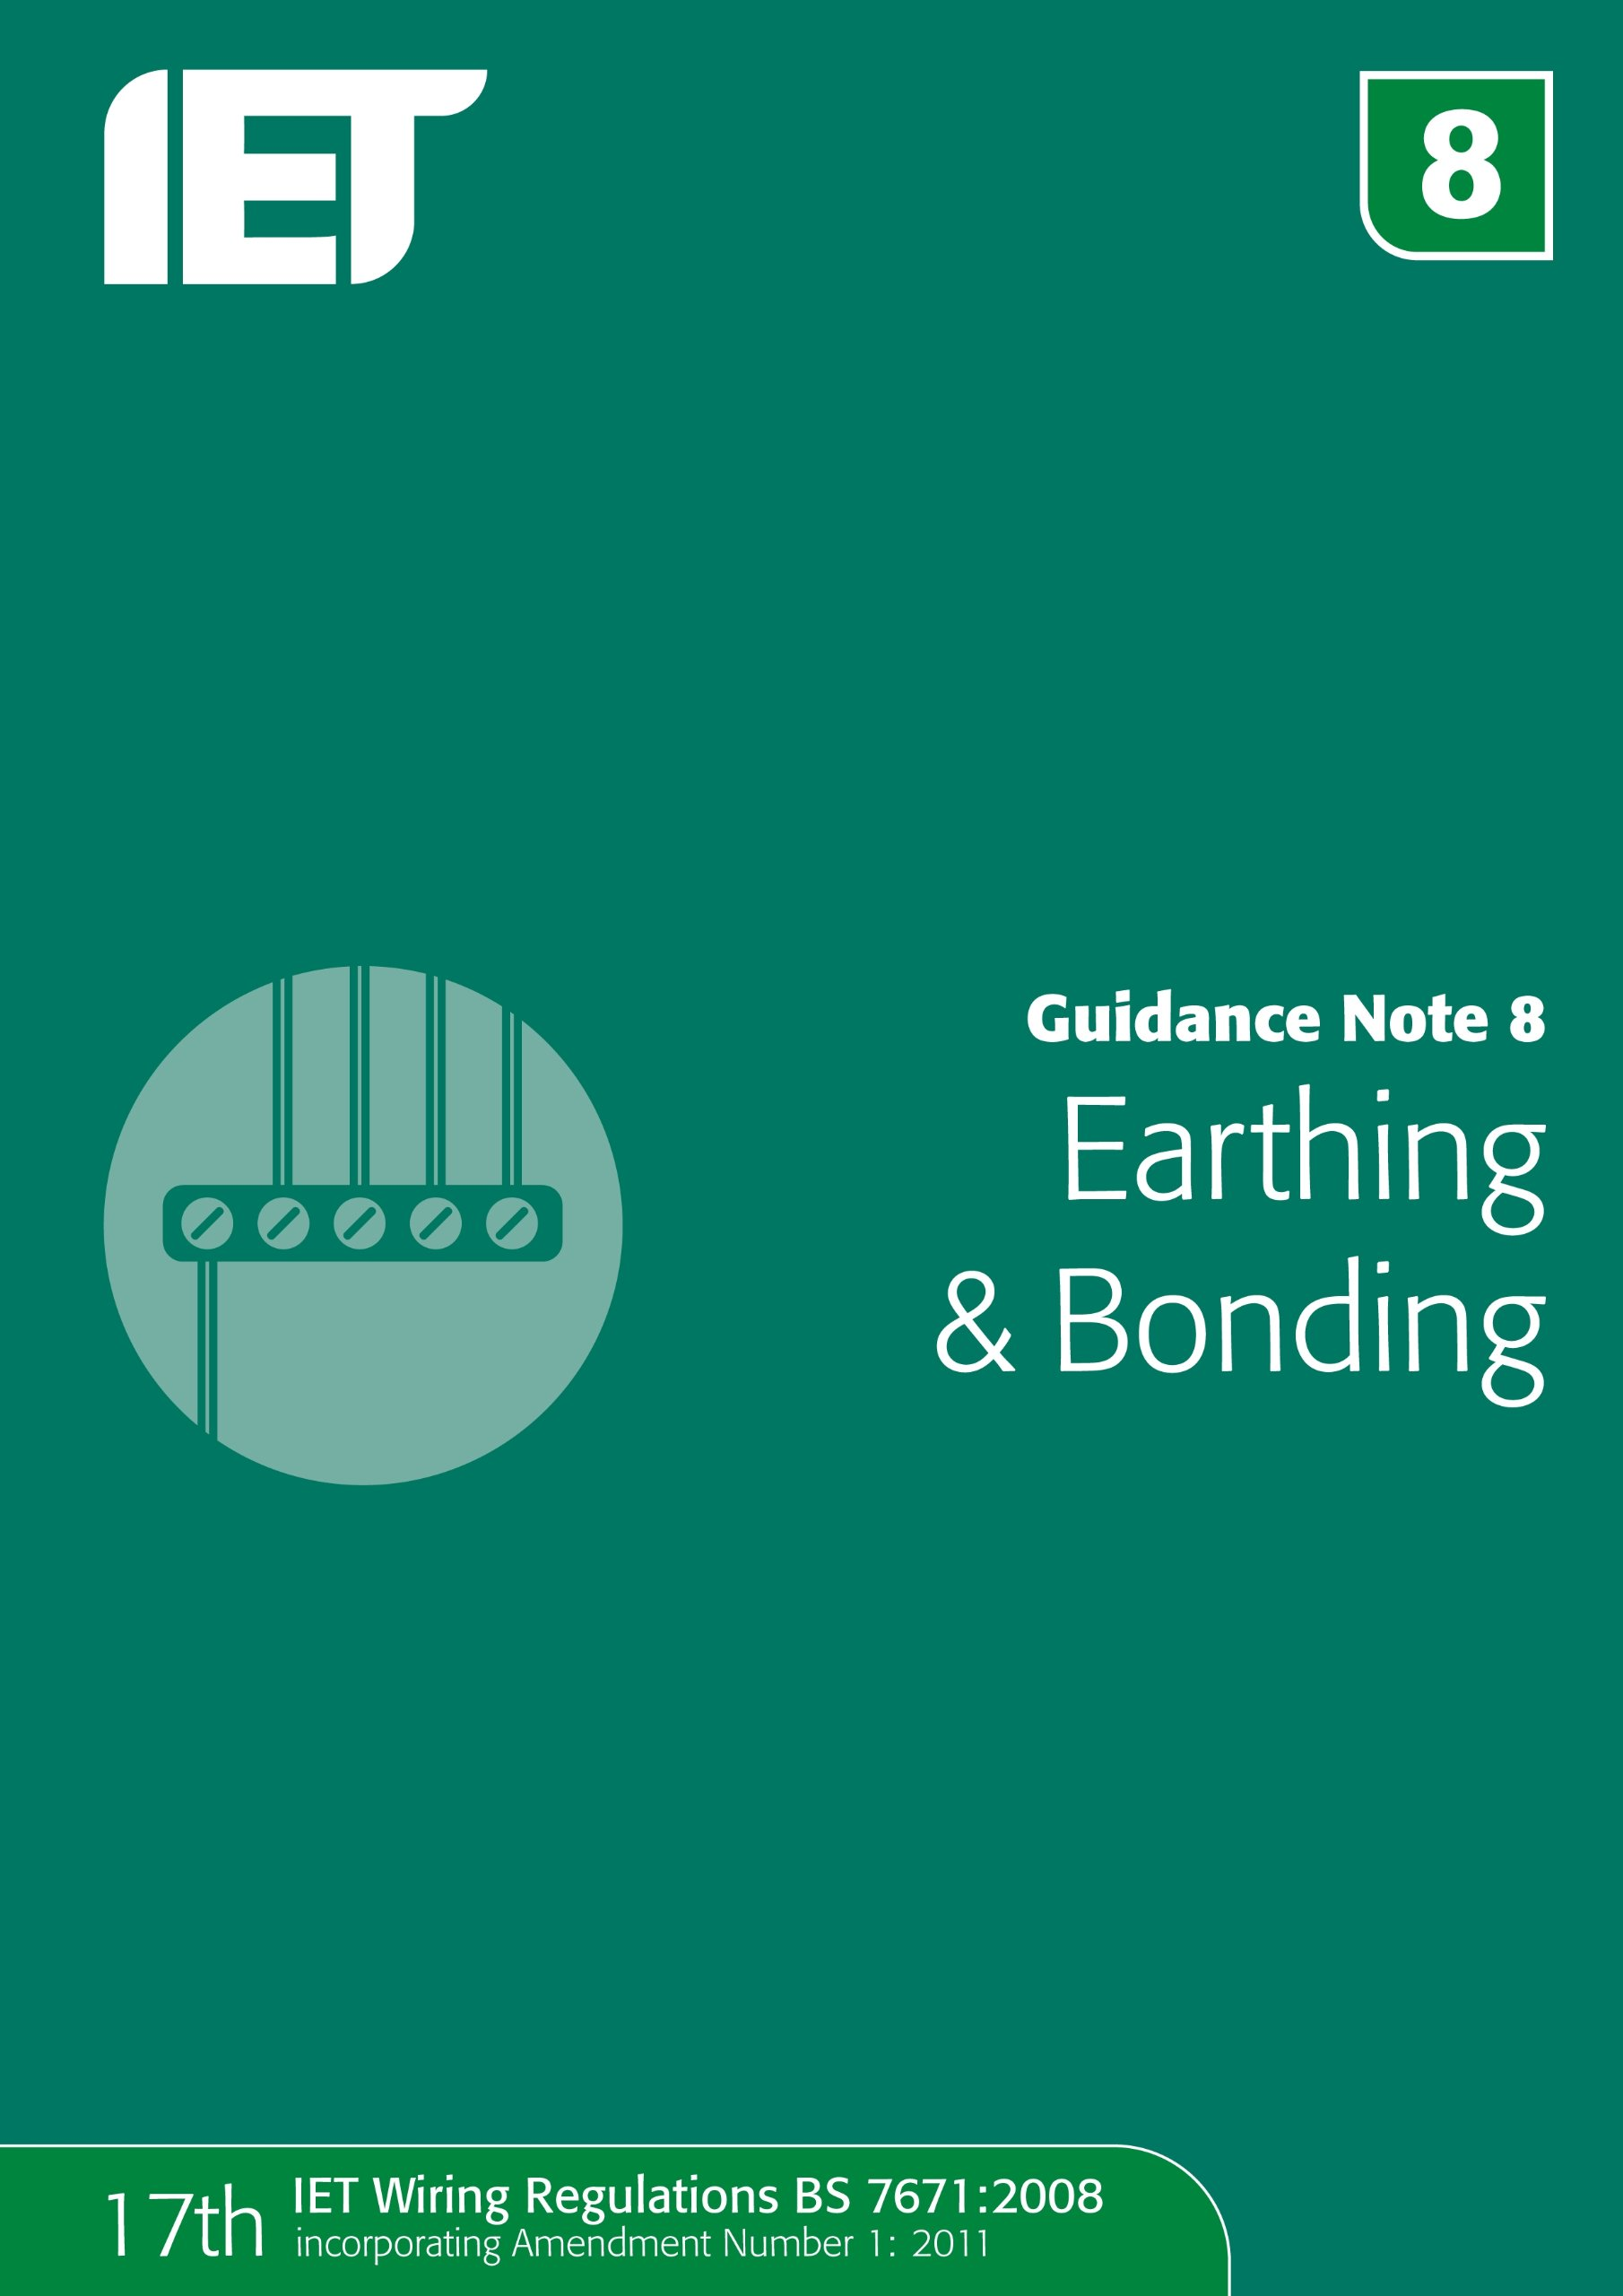 Guidance Note 8 Earthing Bonding The Iet Wiring Regulations 17th Edition Amendment 1 9781849192859 Books